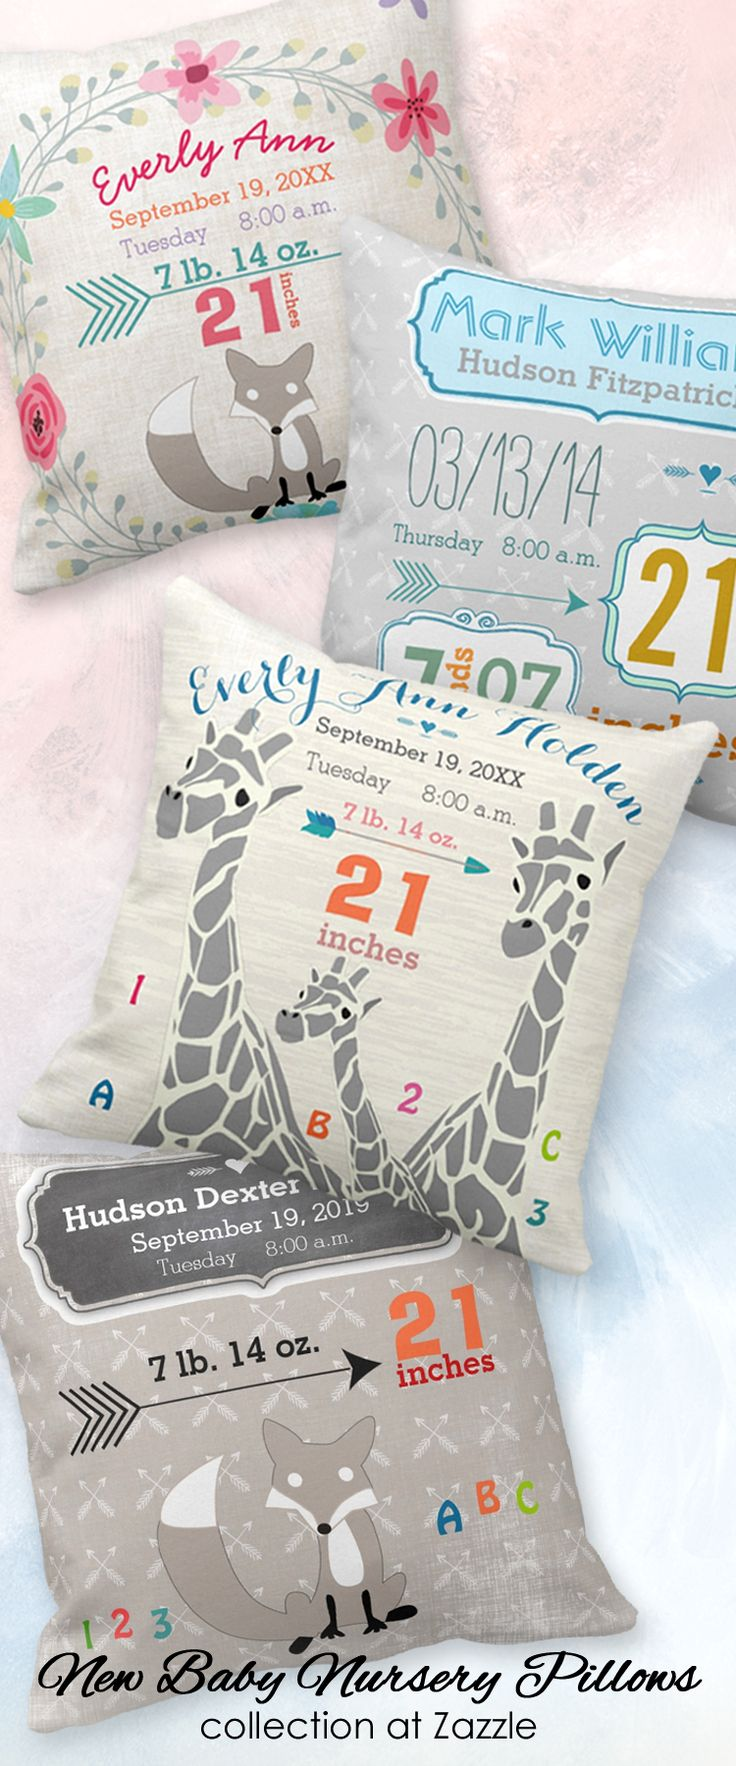 Elephants, giraffes and owls ... oh my! Give the combined gift of a lovely decor item for baby's nursery and keepsake memento for new parents | This adorable collection of new baby birth stats pillows features varied themes for a baby girl or baby boy, including woodland animals and safari animals plus other stylish and trendy themes from which to choose | click to view this large assortment of pillows and other new baby gifts all in one collection ... at Zazzle #newbabygifts #newbabynursery